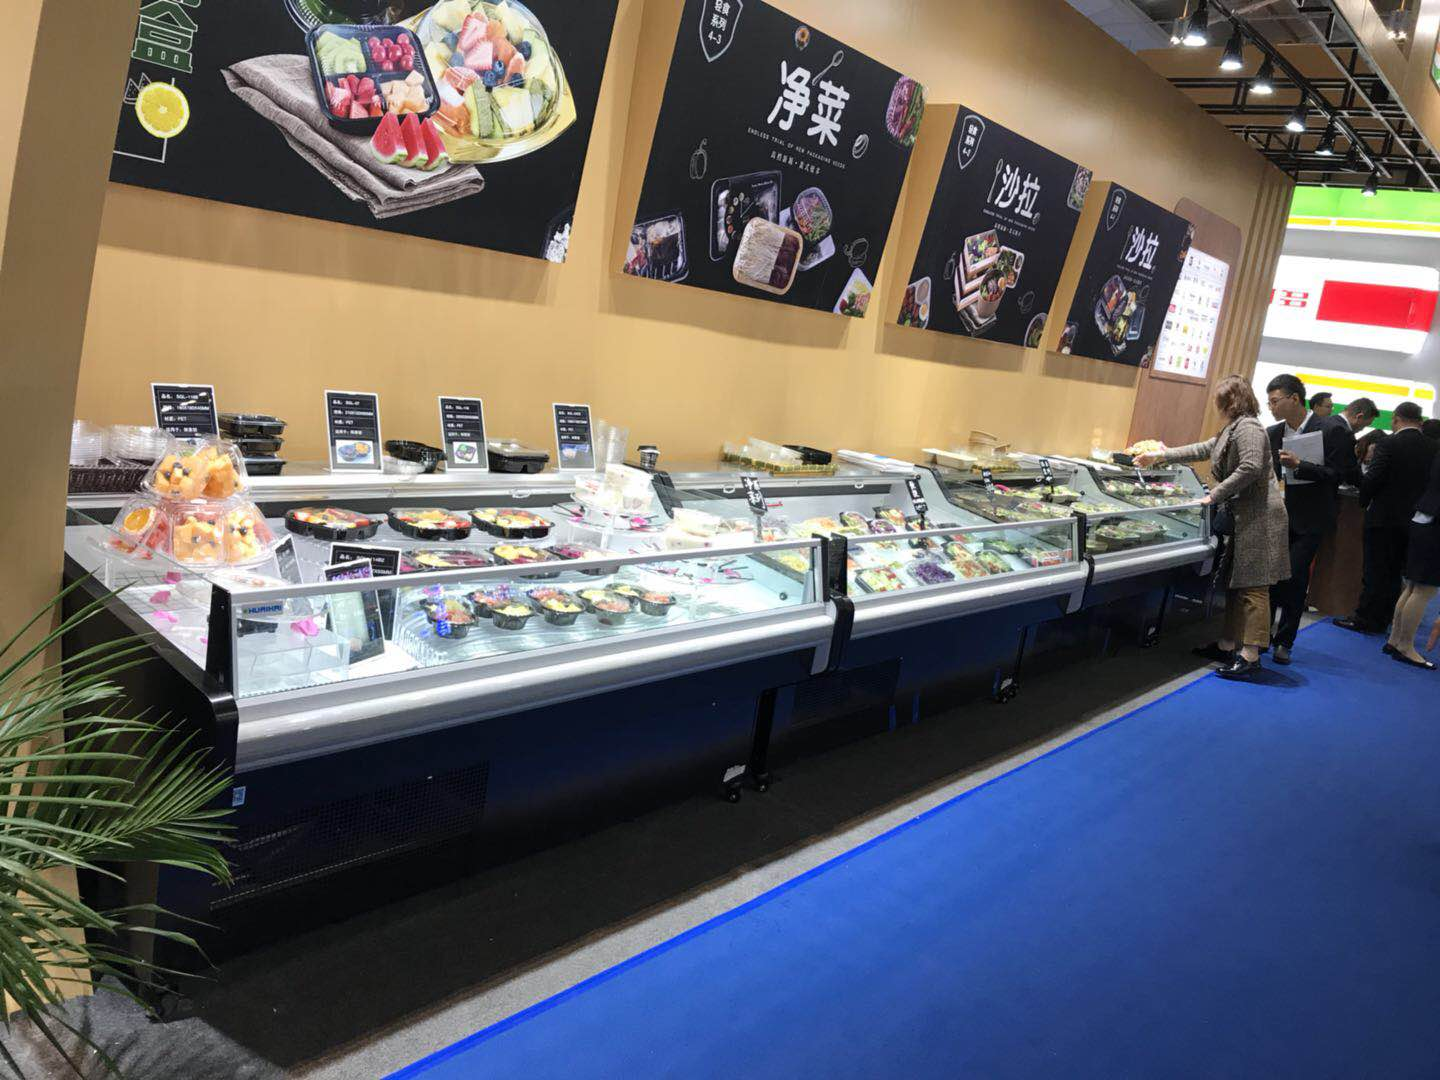 meat shop refrigerated fridge  fish display fridge cheese display fridge